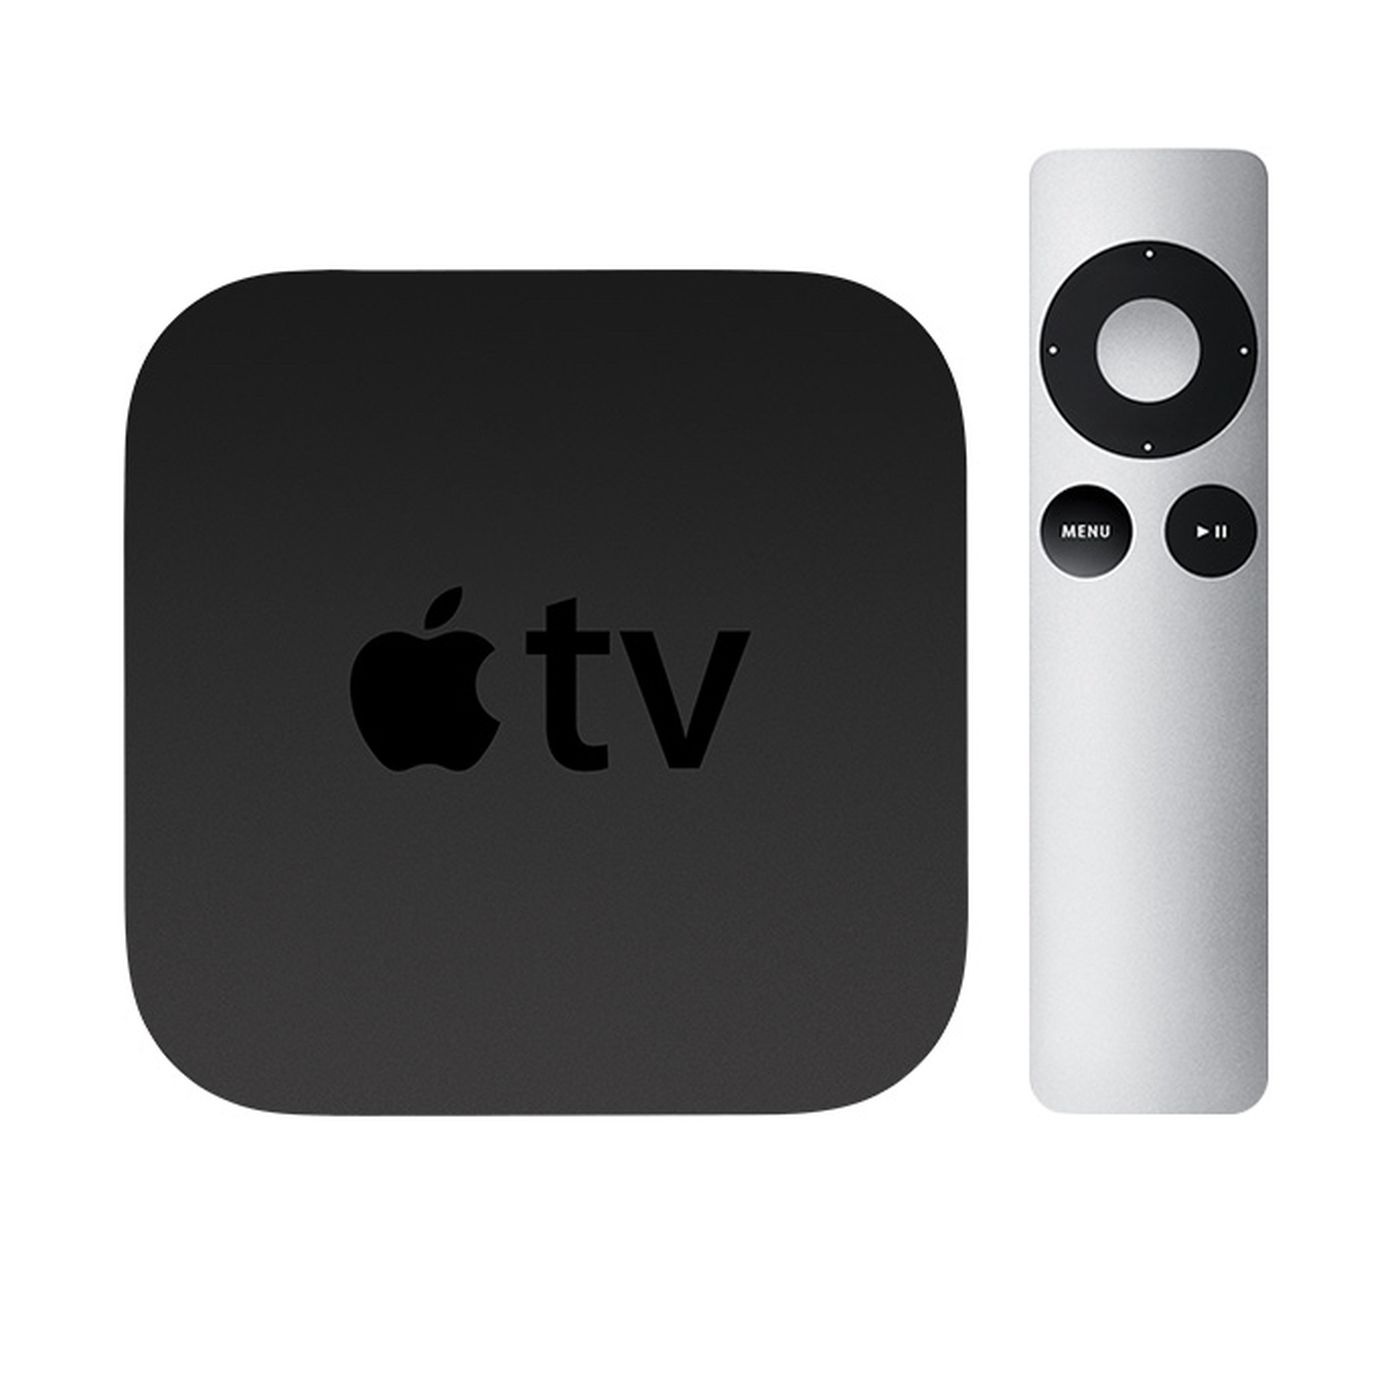 Youtube Ends Support For Old 2012 Apple Tv But You Can Still Use Airplay The Verge